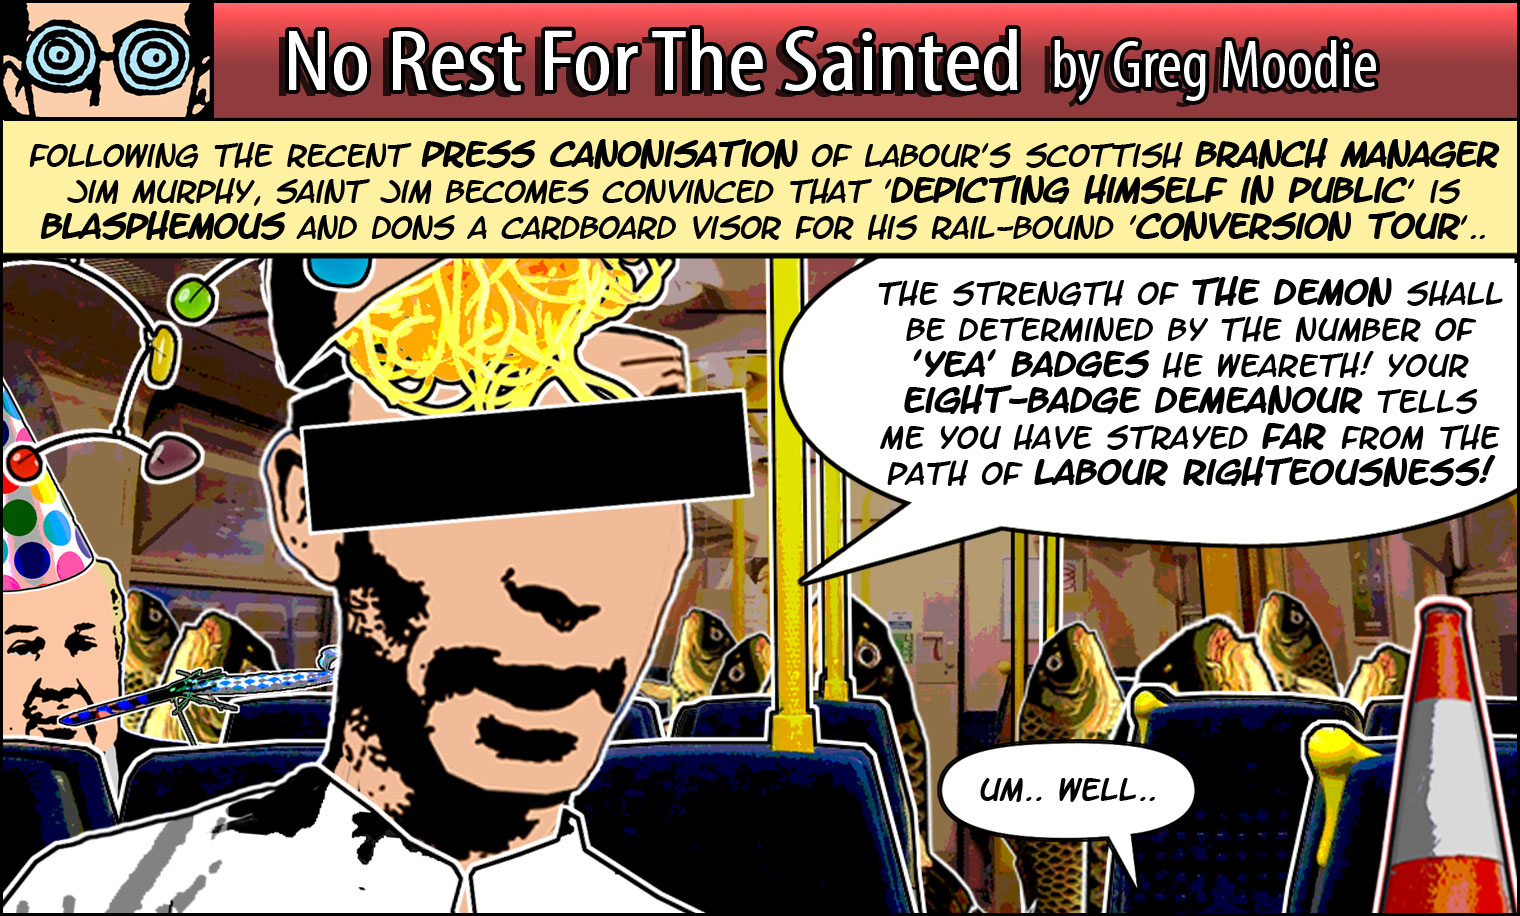 No Rest For The Sainted